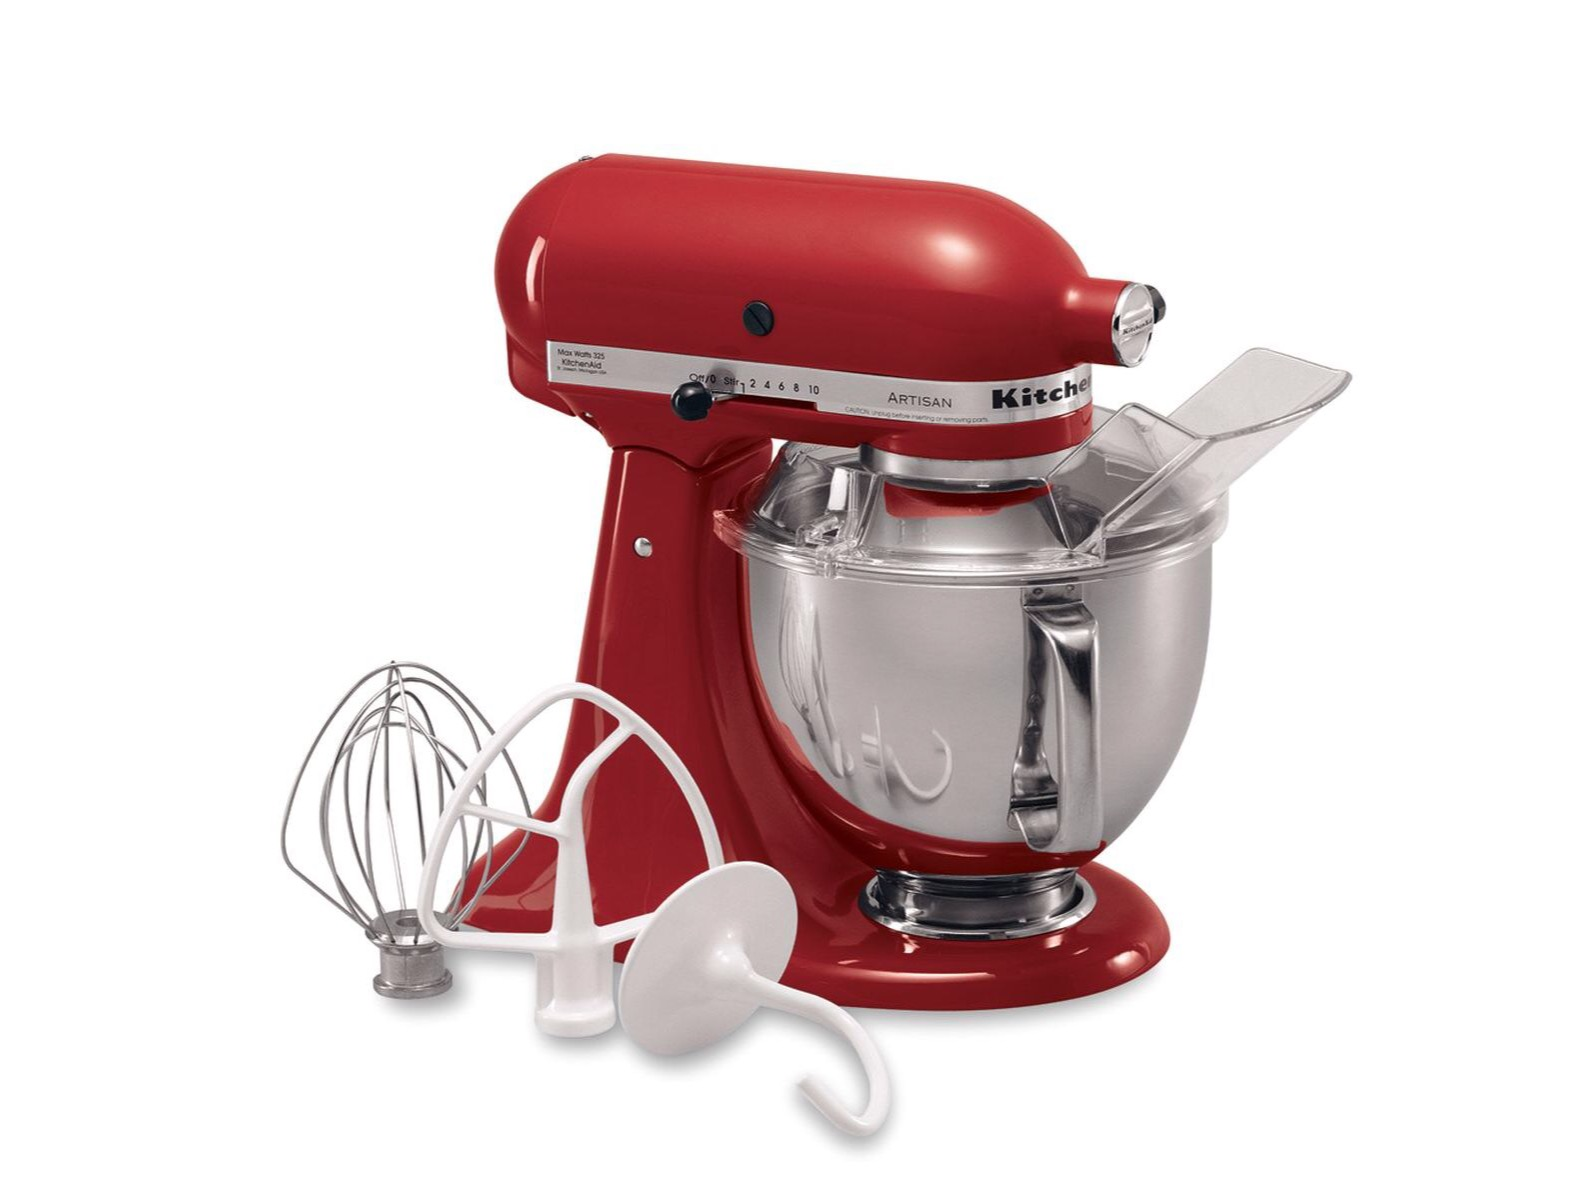 KitchenAid Artisan Stand Mixer — Tools and Toys